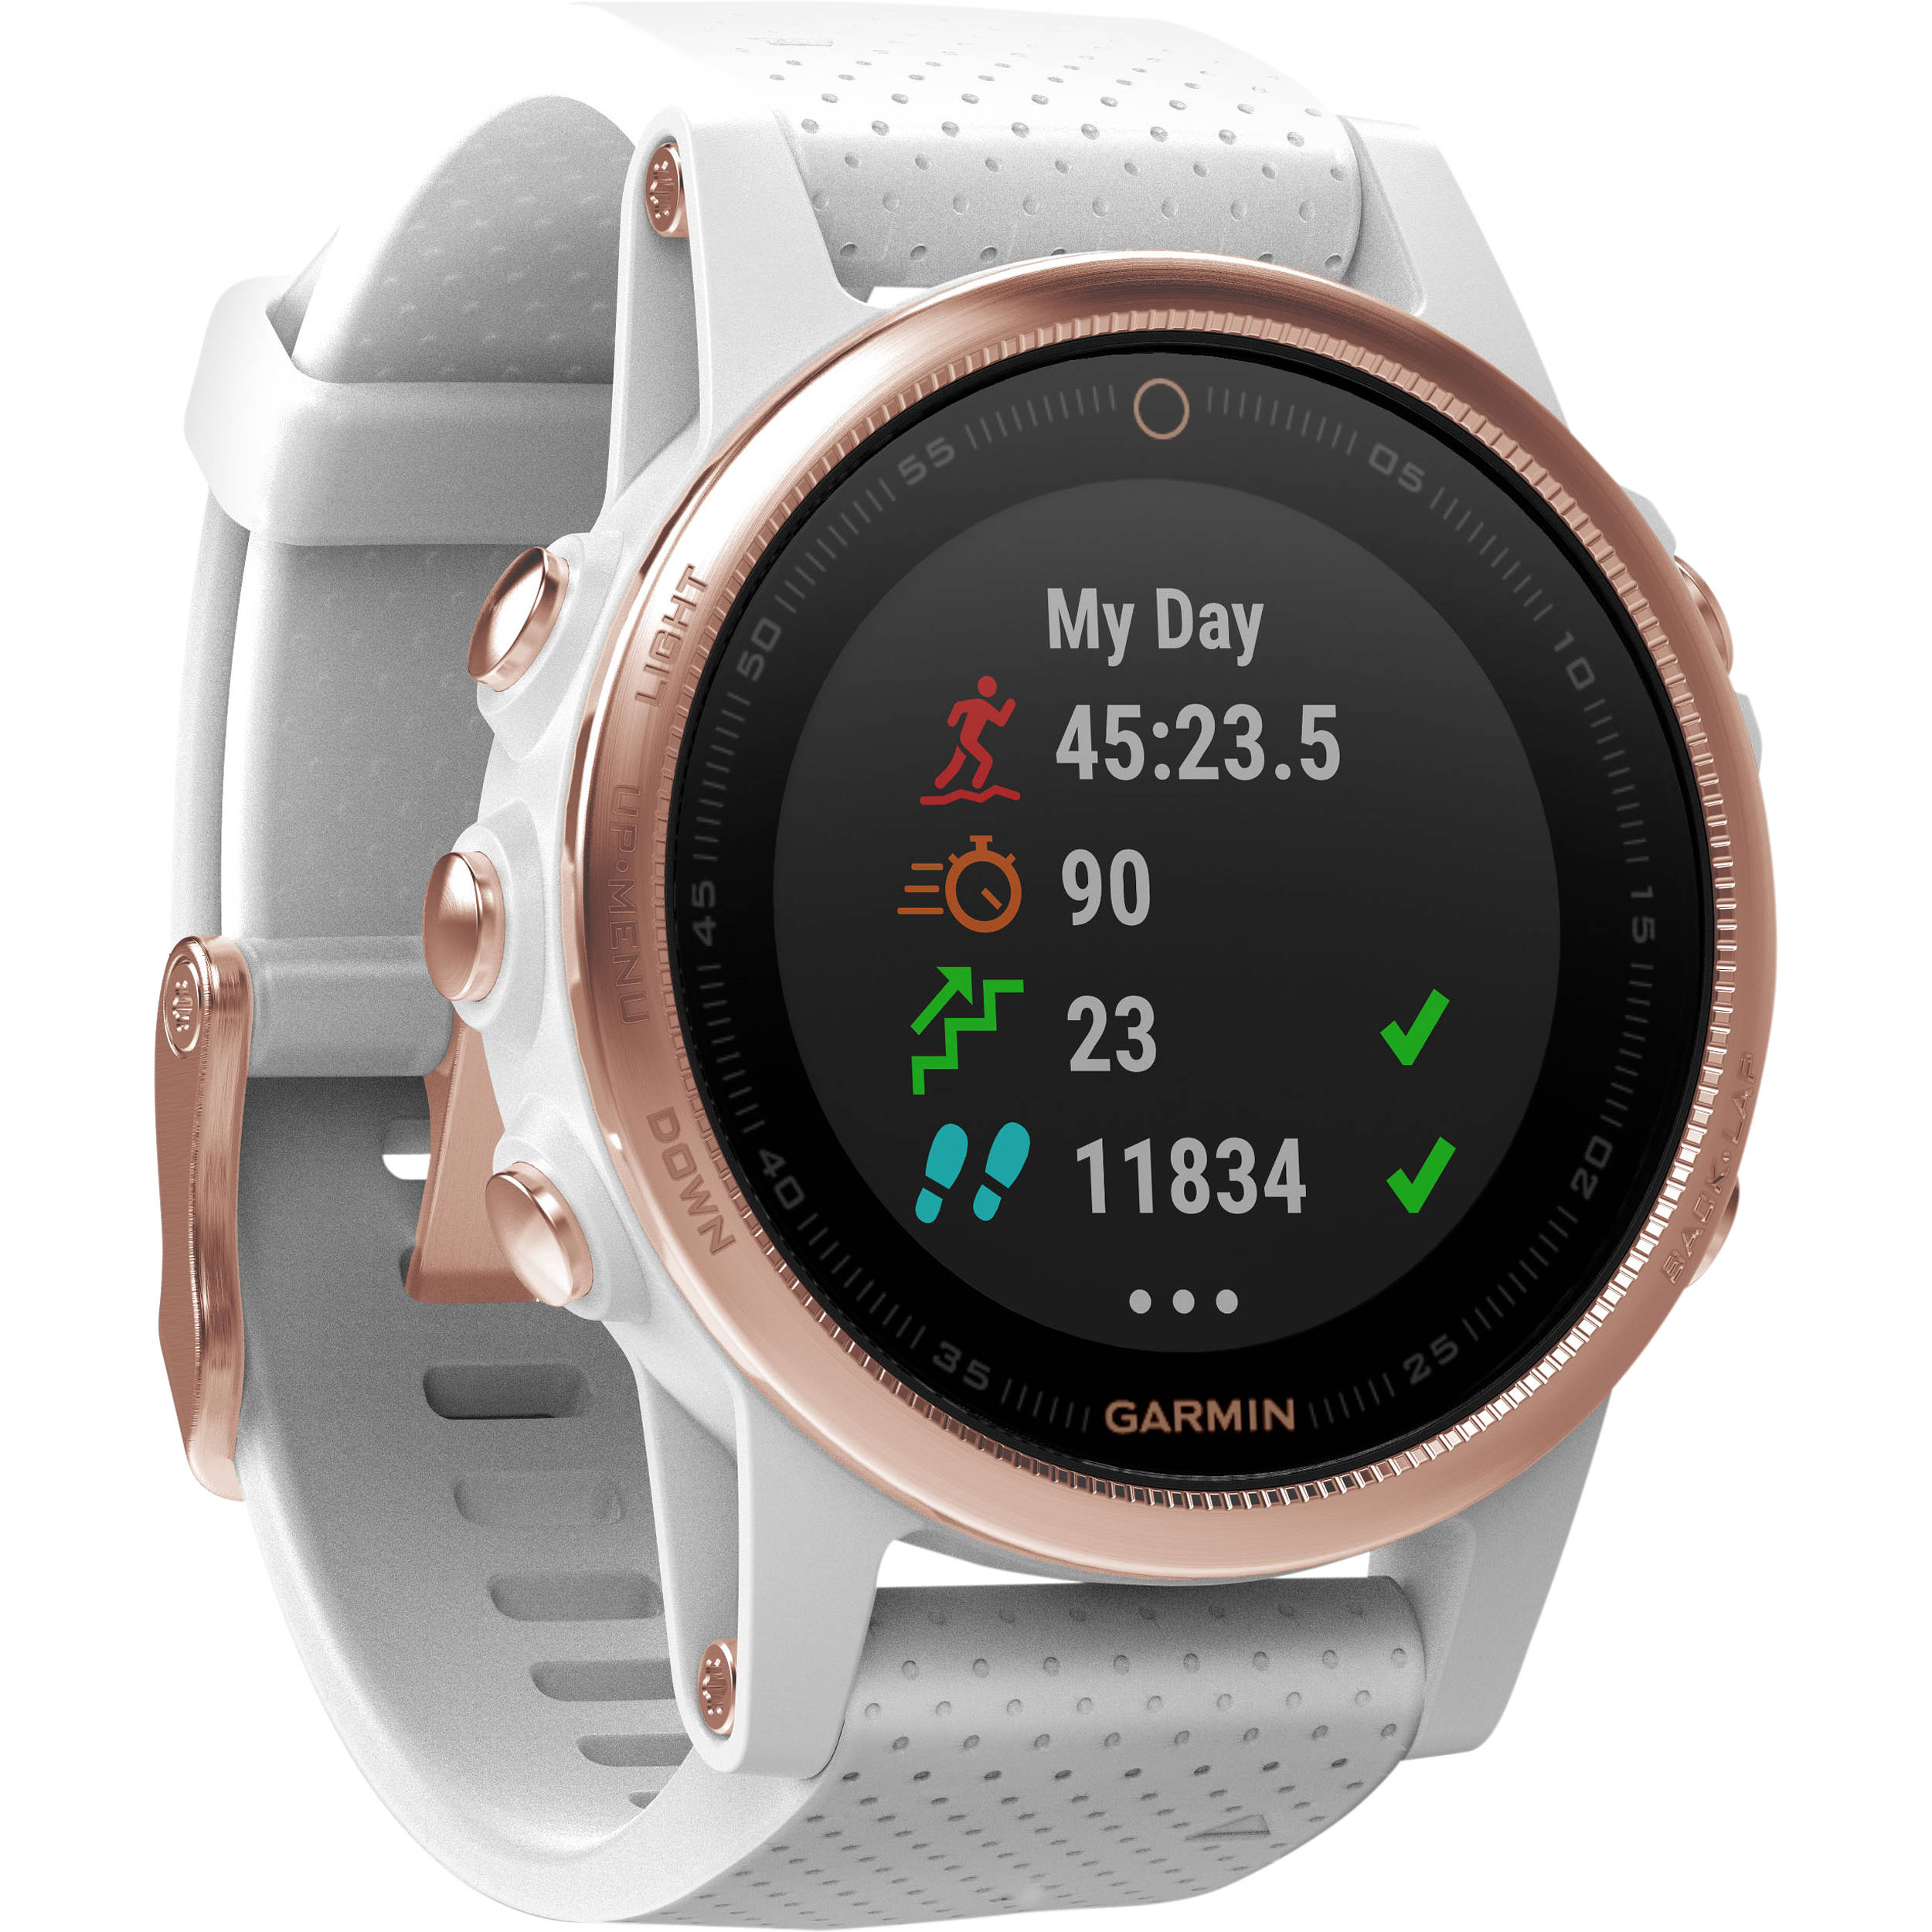 studiosensors garmin reviews digital trends smartwatch gps sapphire fenix hr review watch